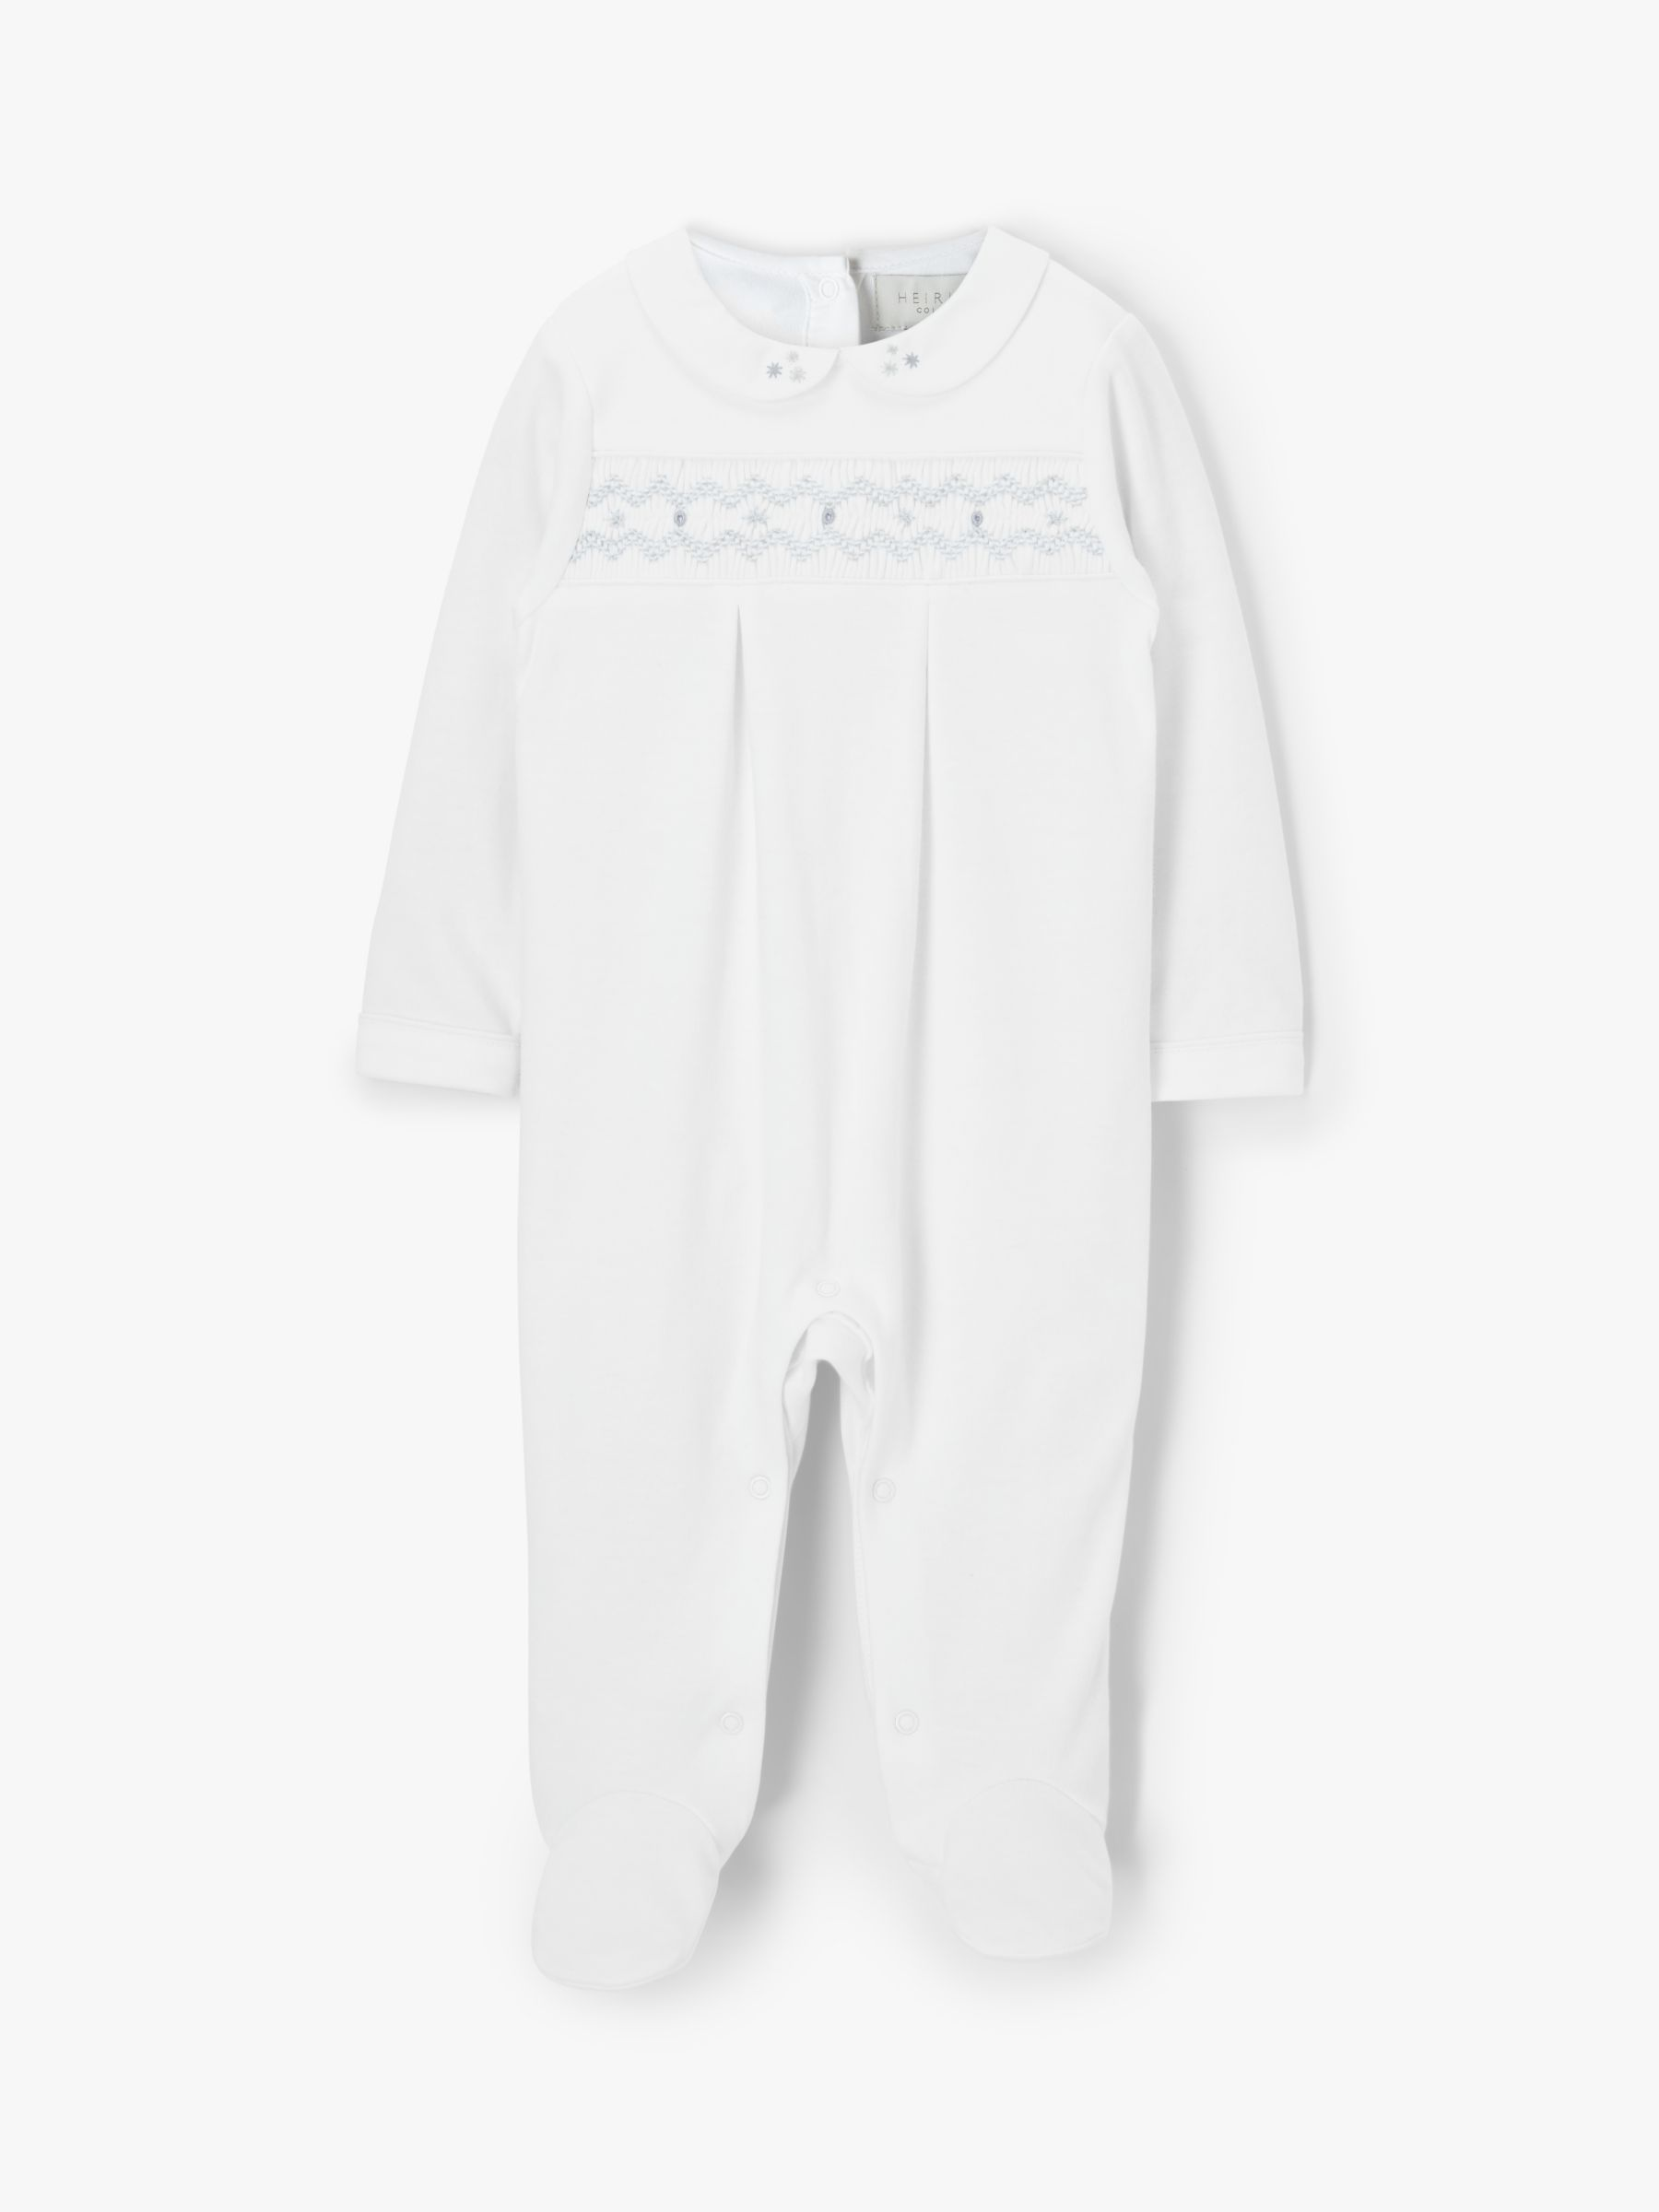 John Lewis & Partners Heirloom Collection Baby Smock Sleepsuit, White